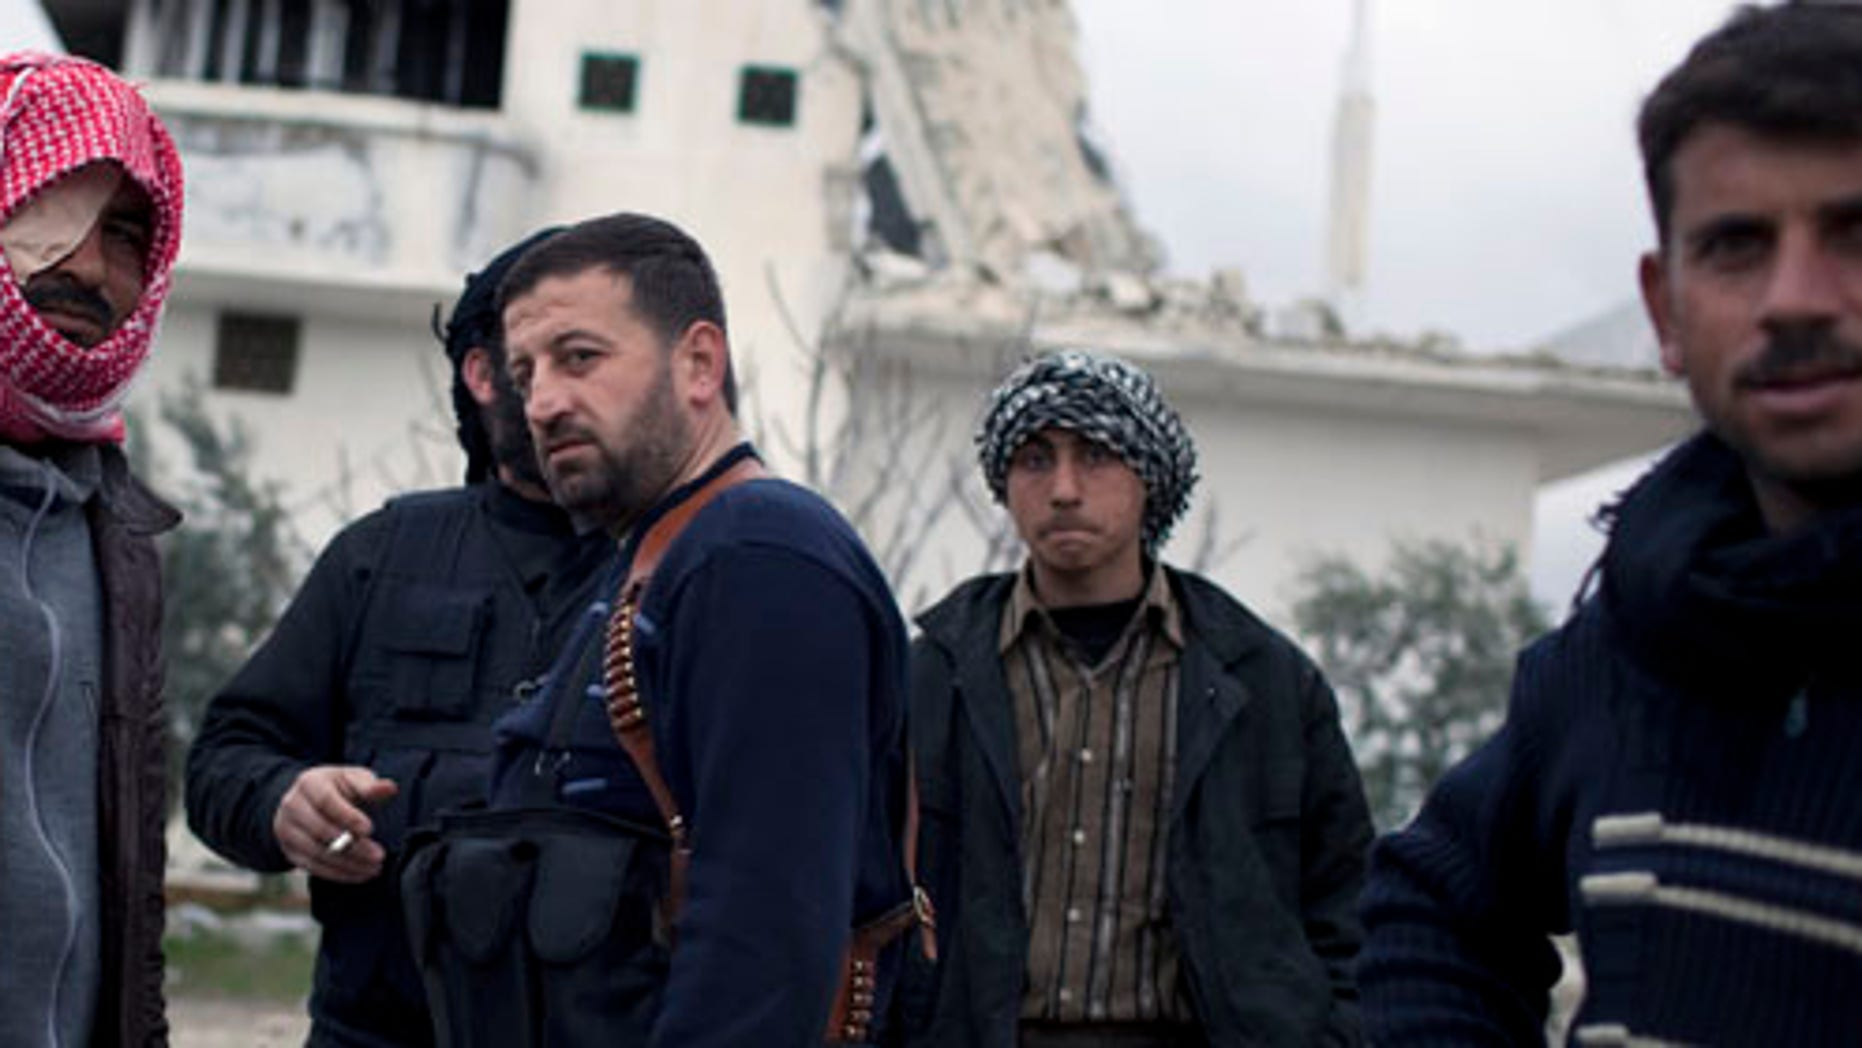 Free Syrian Army soldiers gather outside a house destroyed in fighting against President Assad's forces in Sarmin, north of Syria, Tuesday, Feb. 28, 2012.  (AP Photo/Rodrigo Abd)